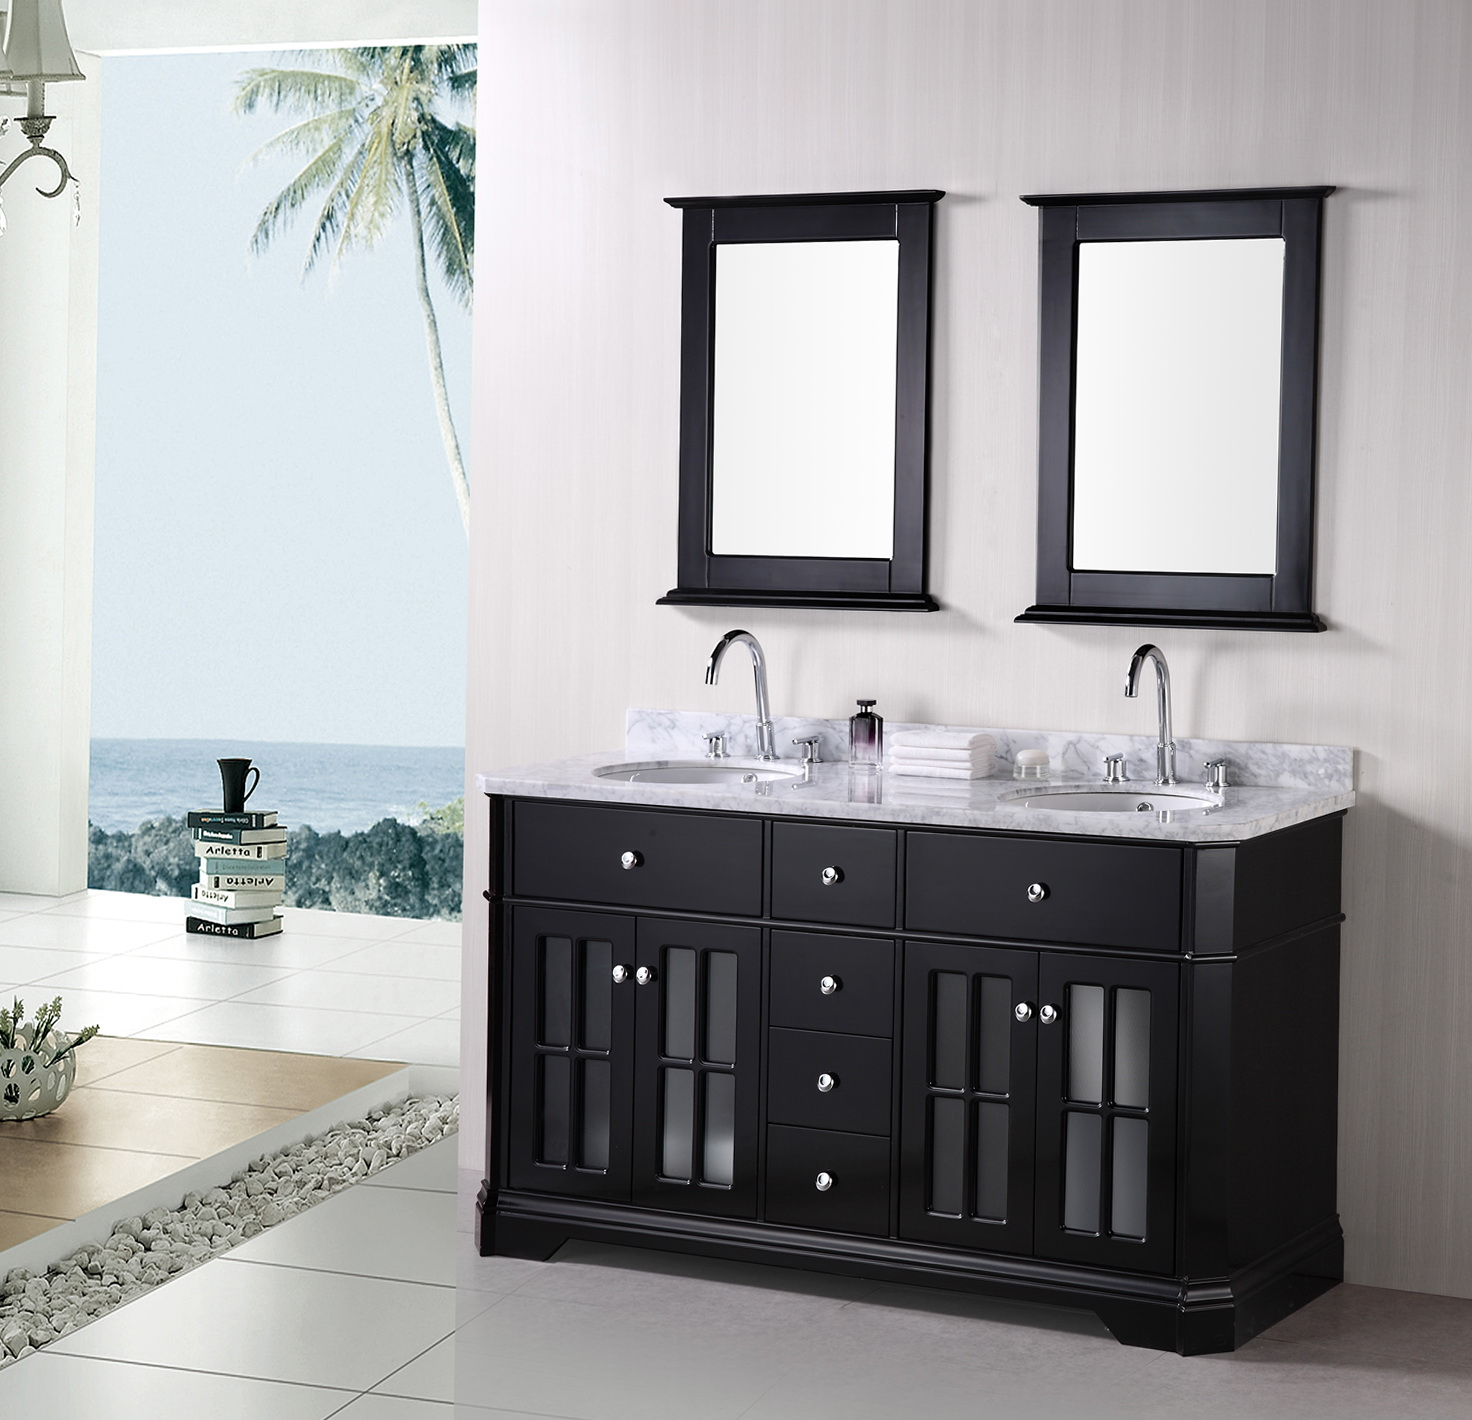 Bathroom mirror ideas double vanity home design ideas Double vanity ideas bathroom